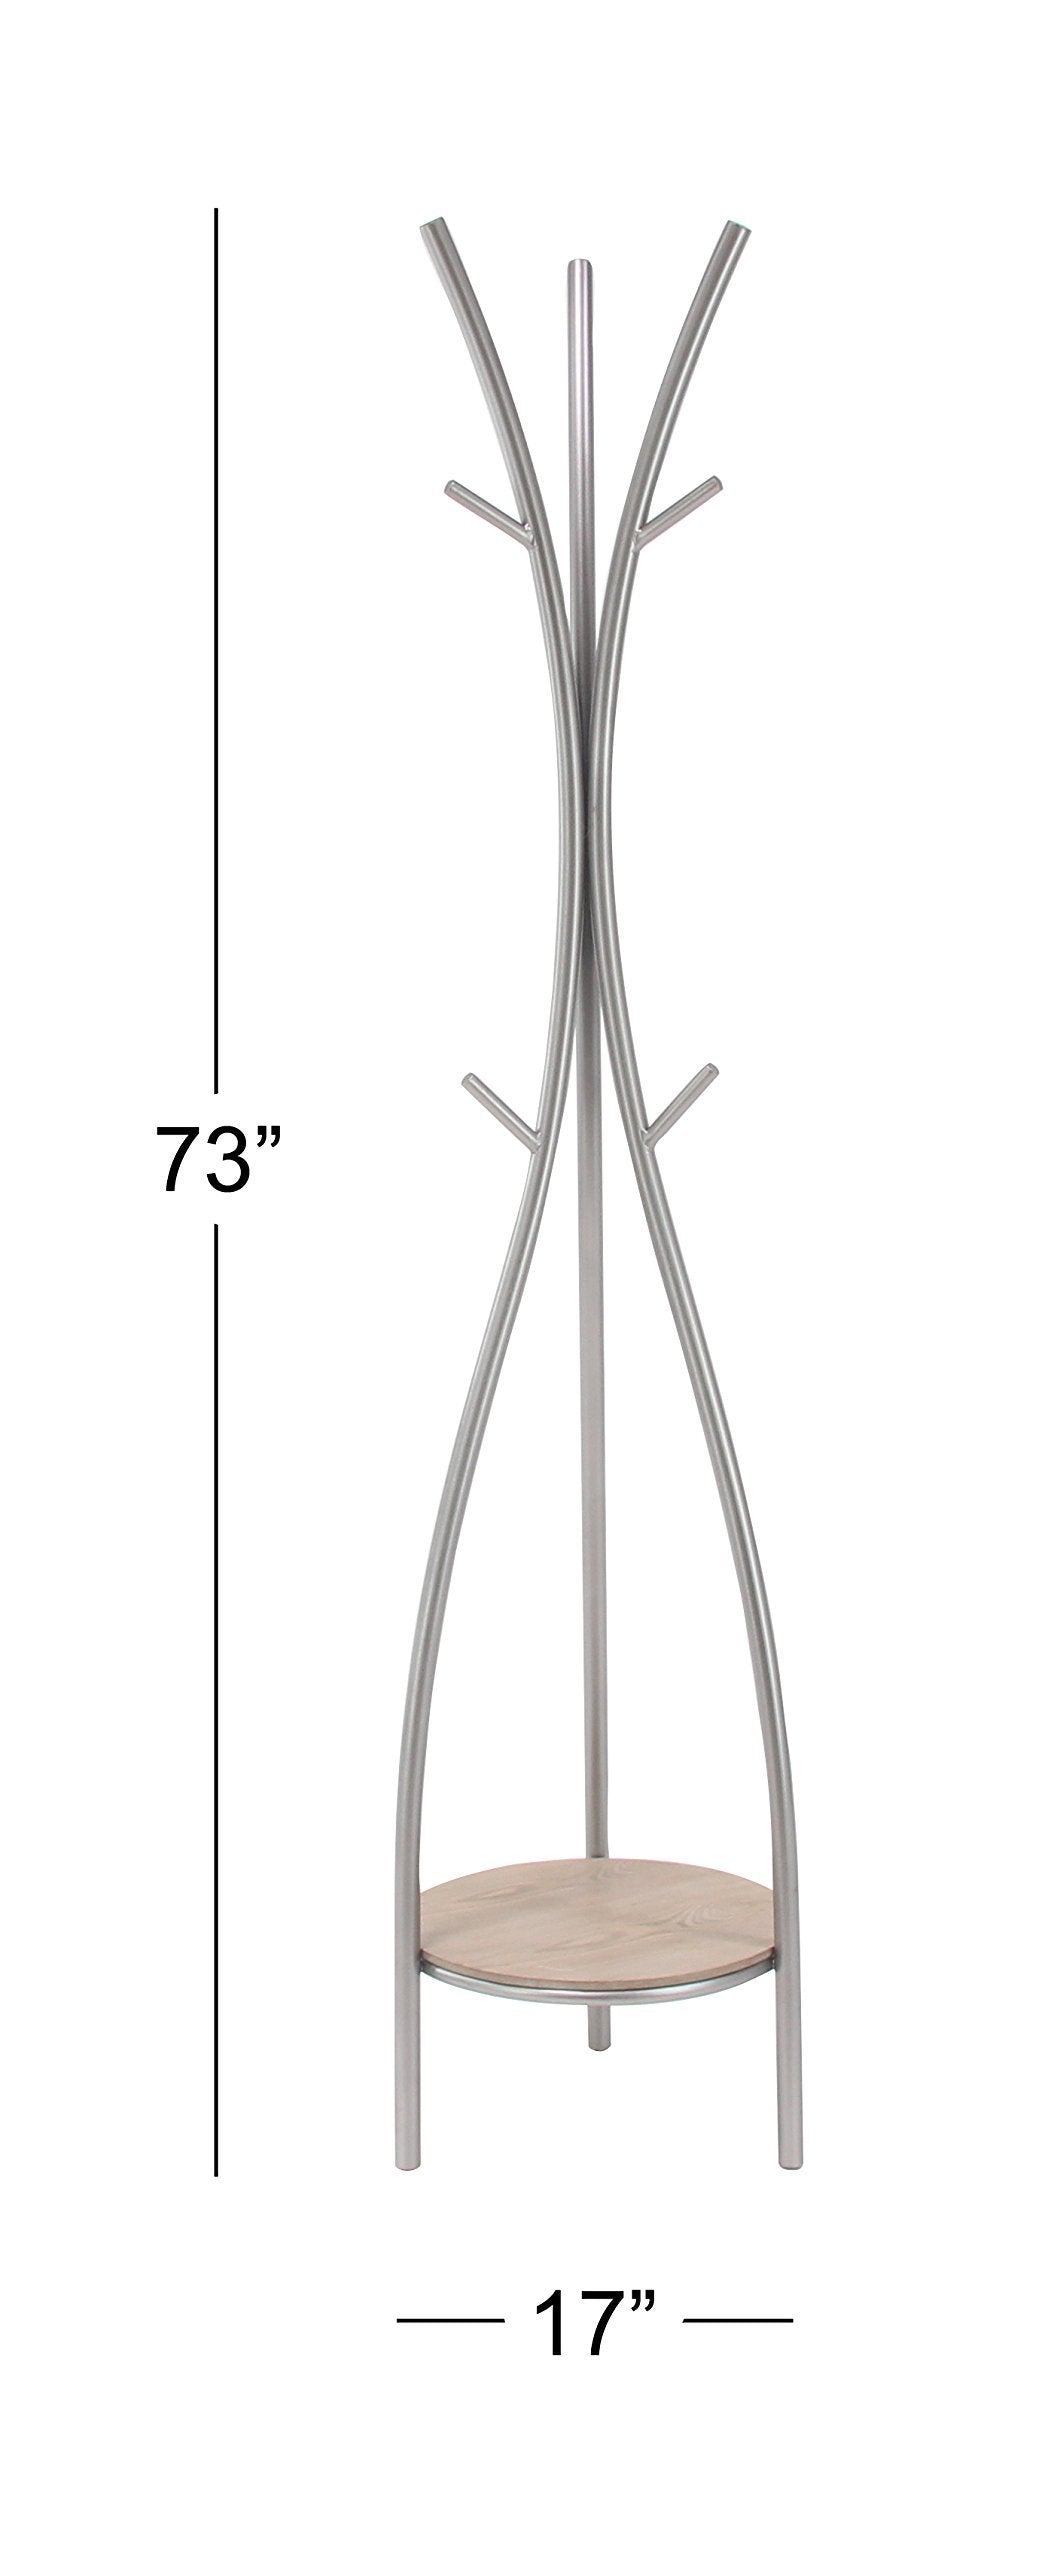 Best deco 79 77602 coat rack silver